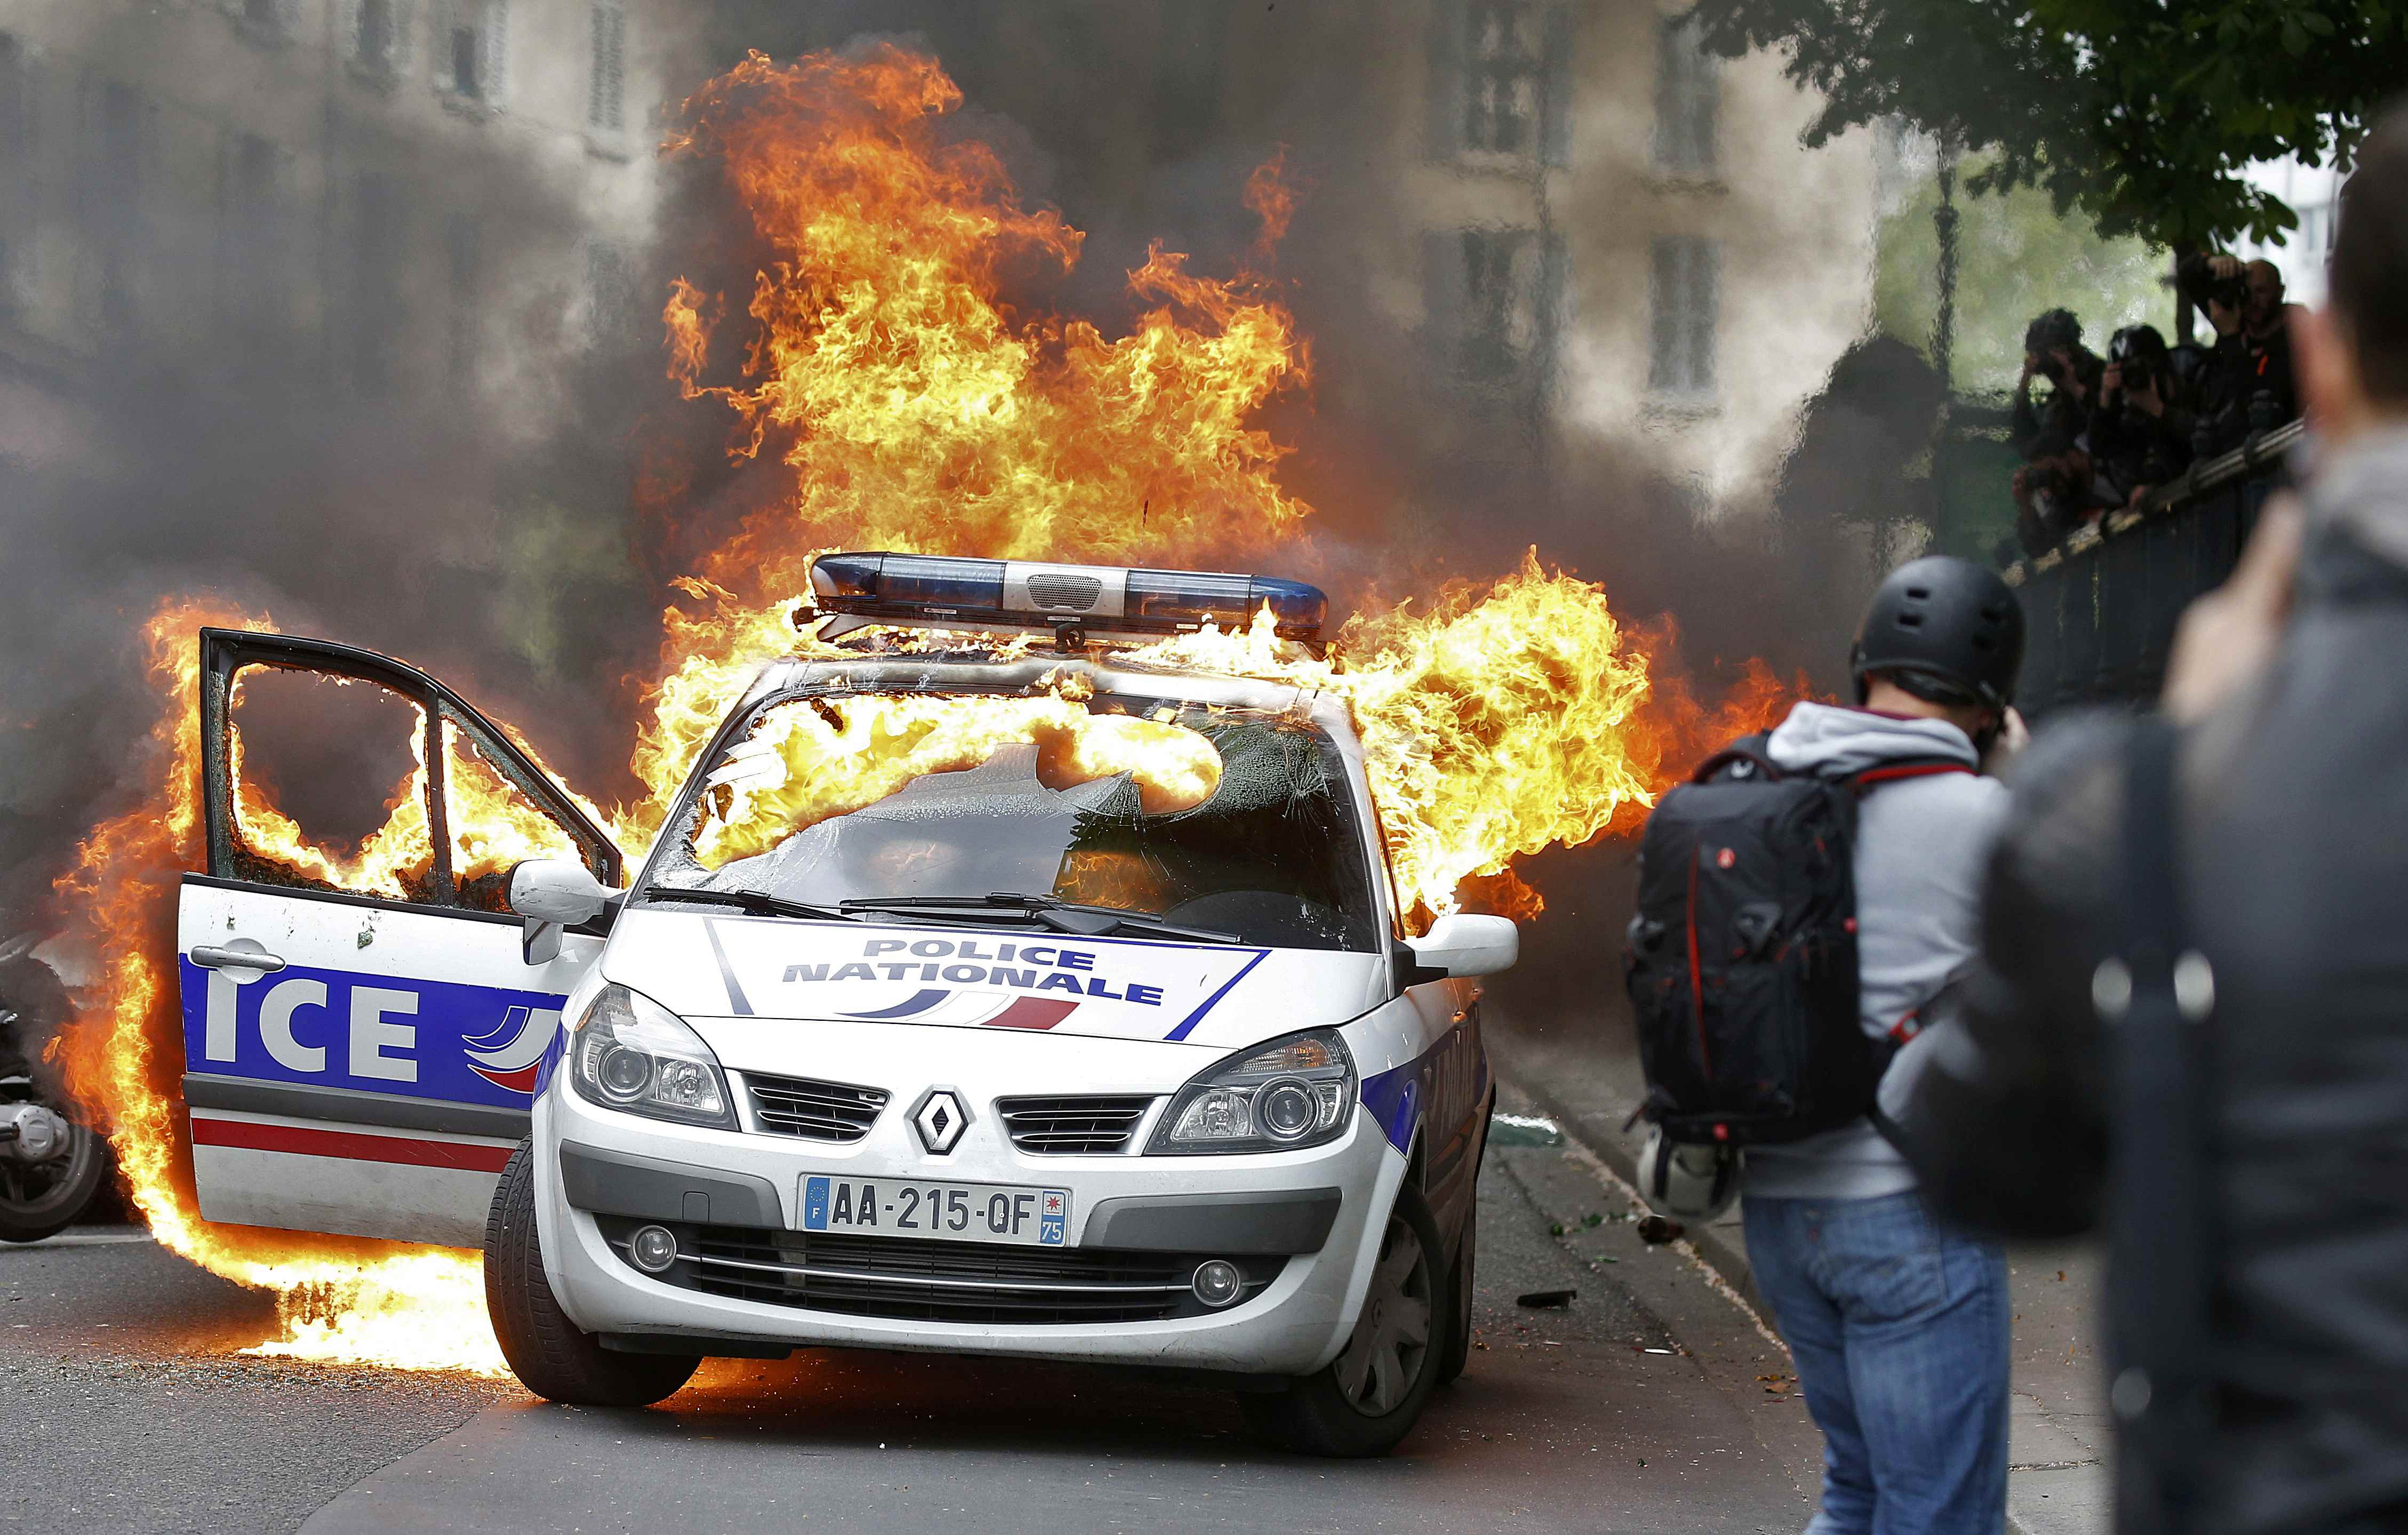 Cars torched, officers injured as anti-police violence sweeps France